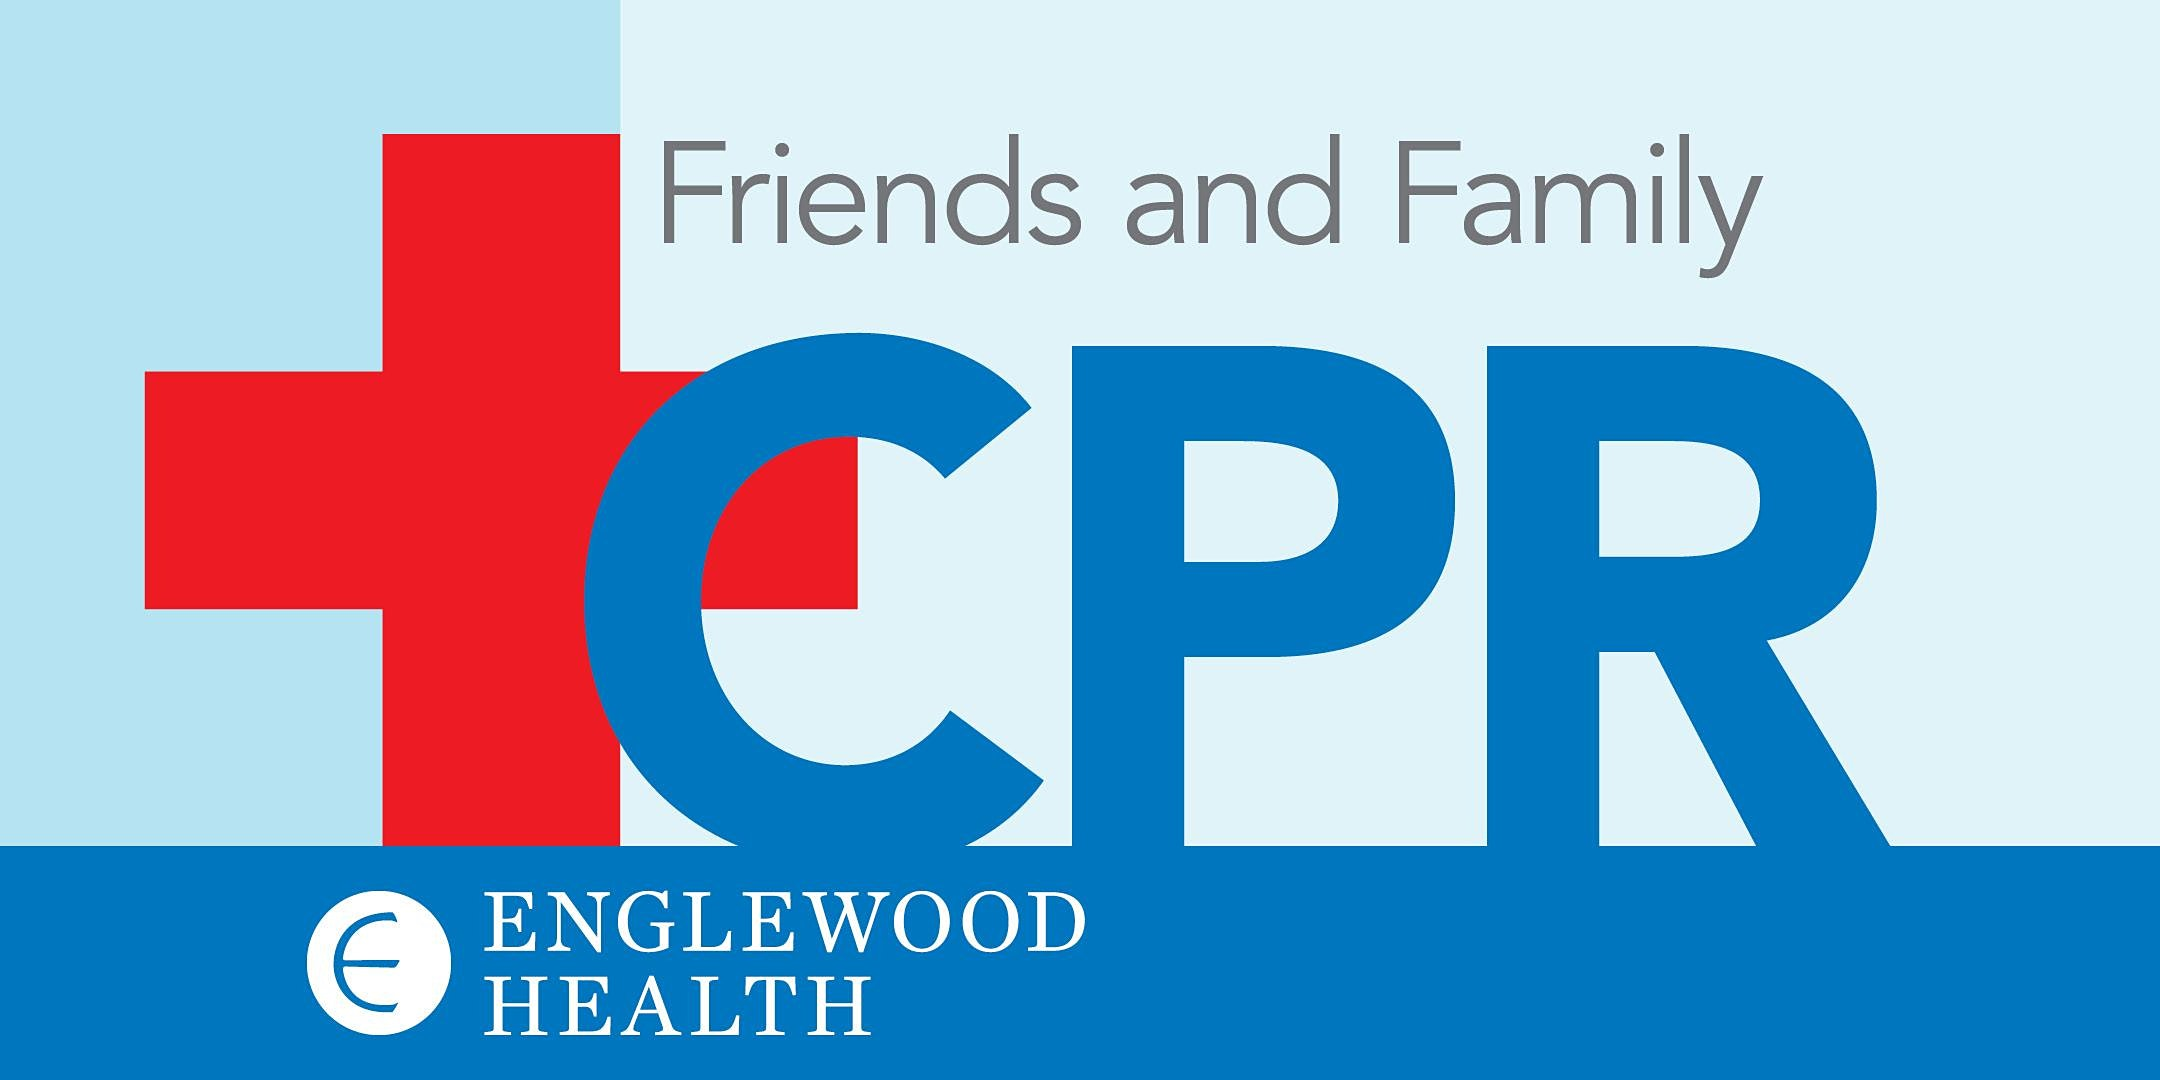 More info: Friends and Family CPR